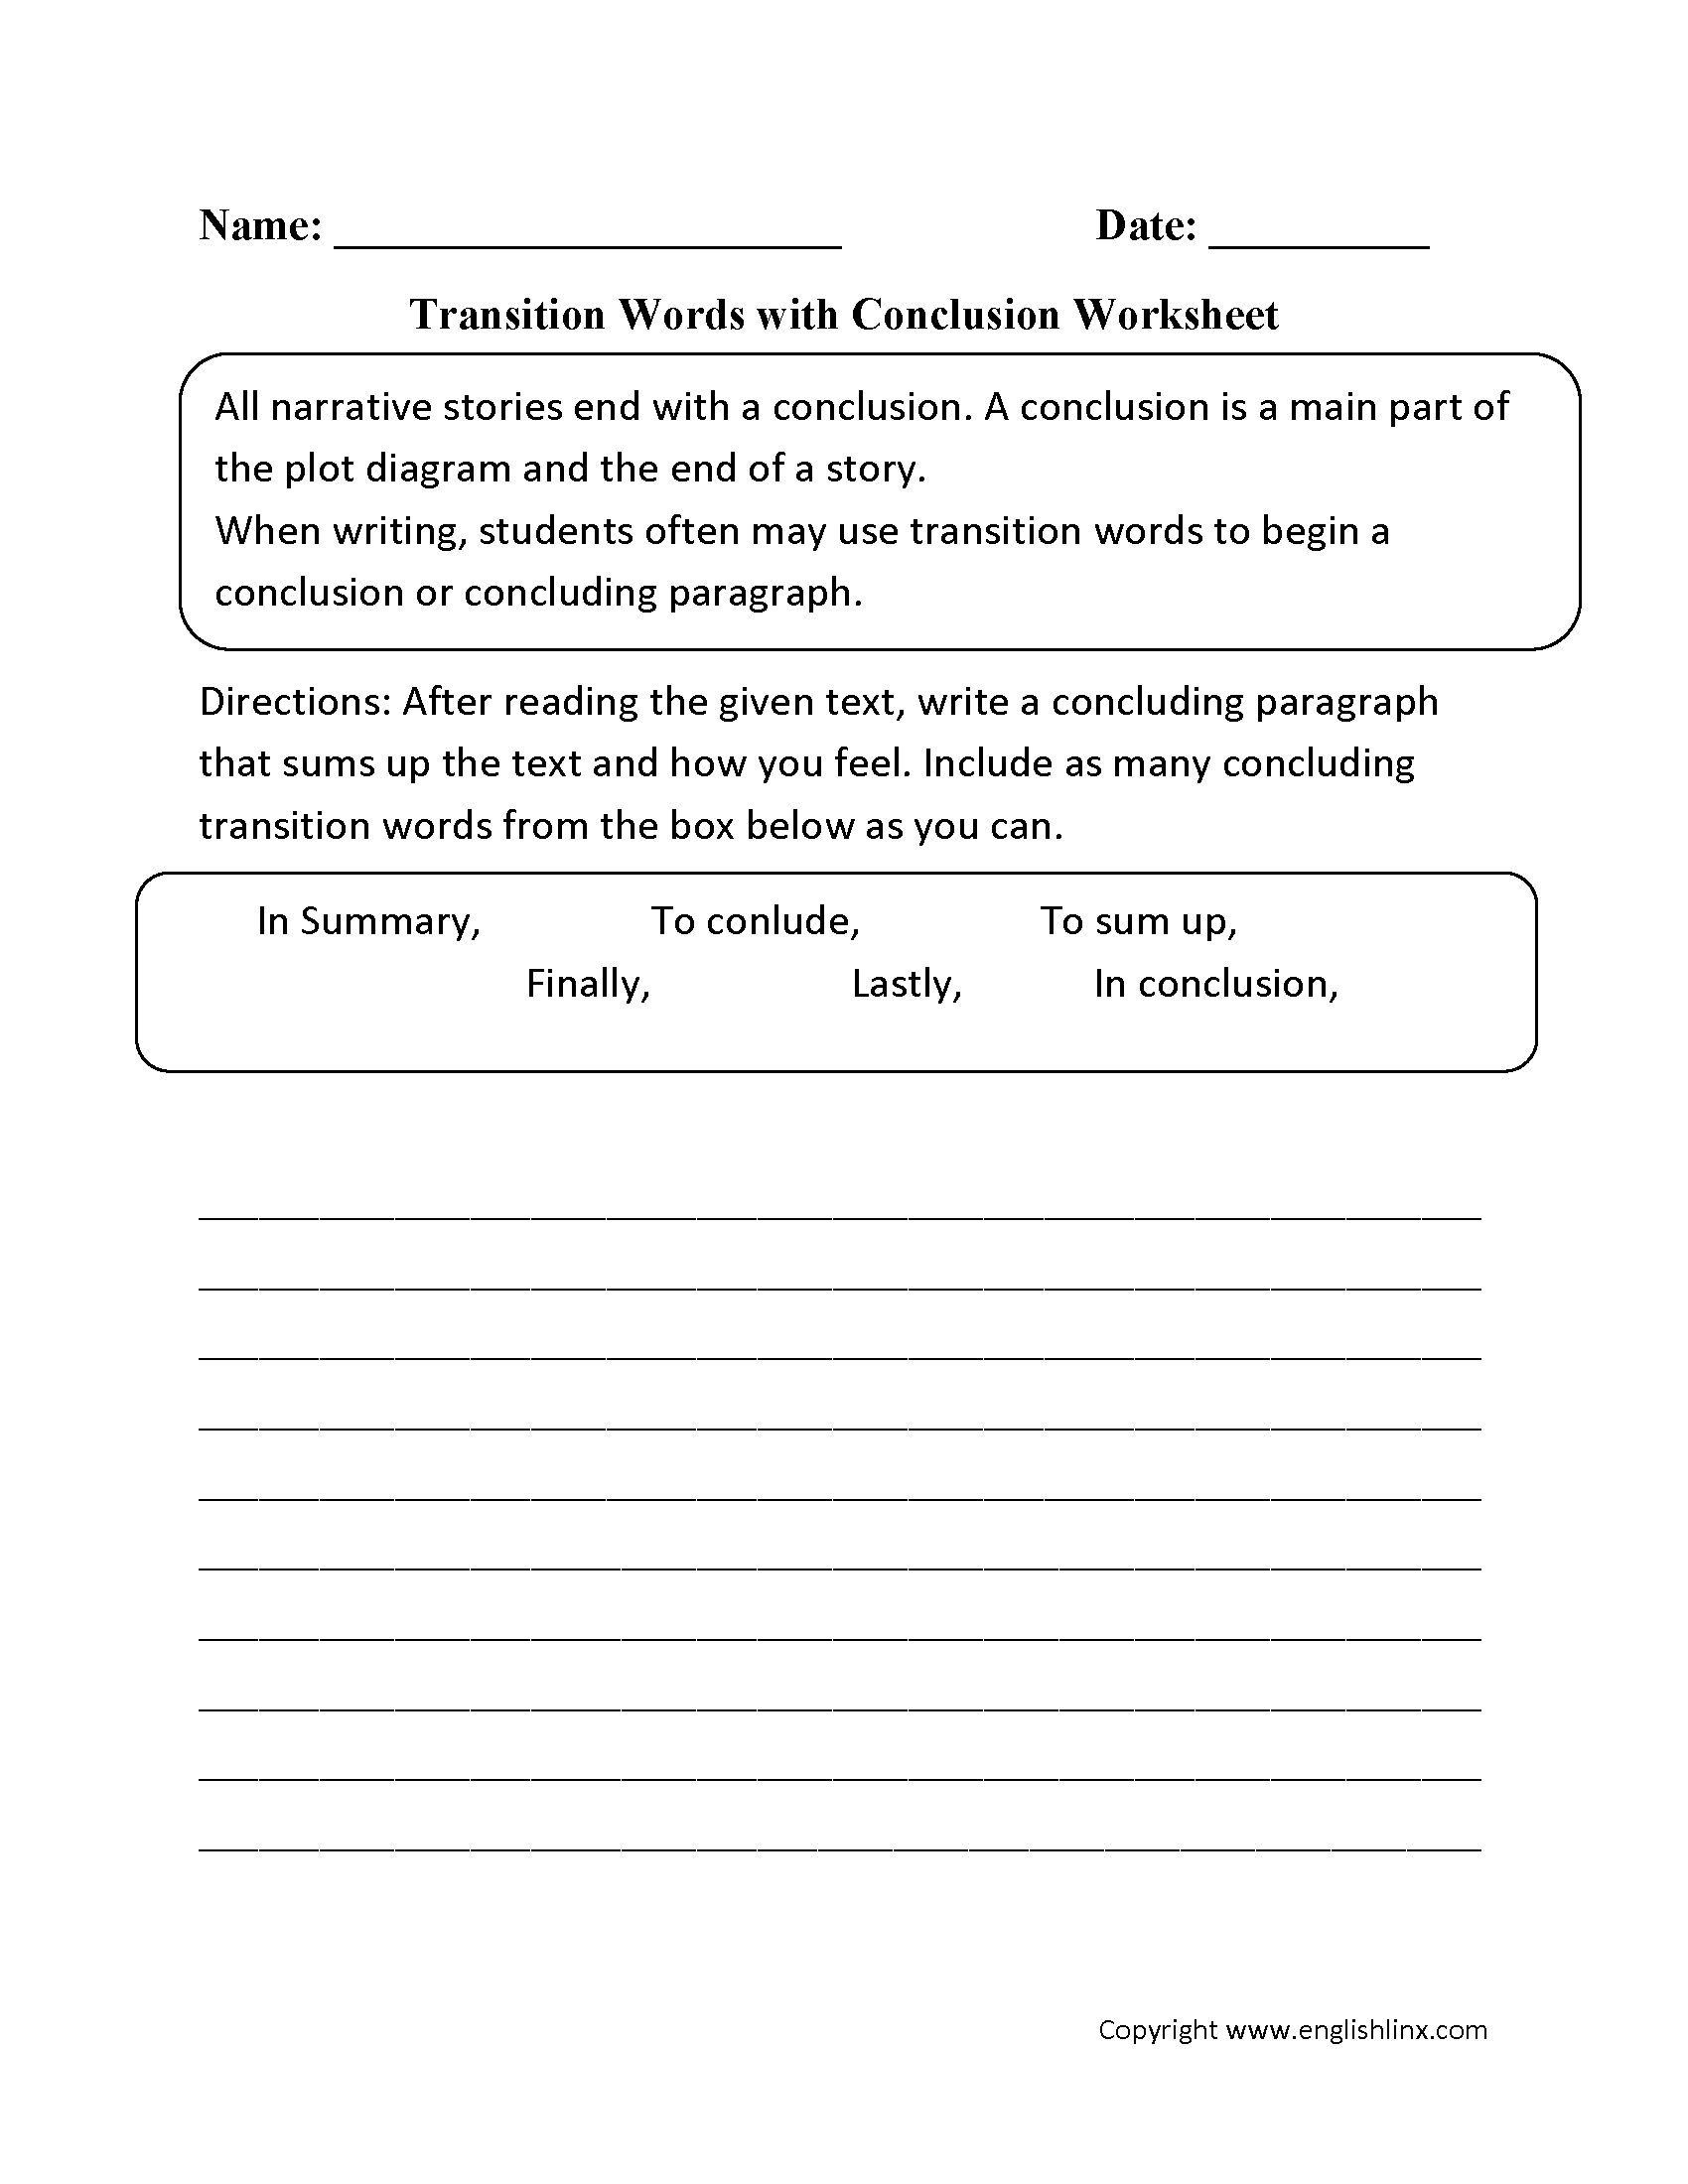 16 Best Images Of Transition Words 4th Grade Worksheet